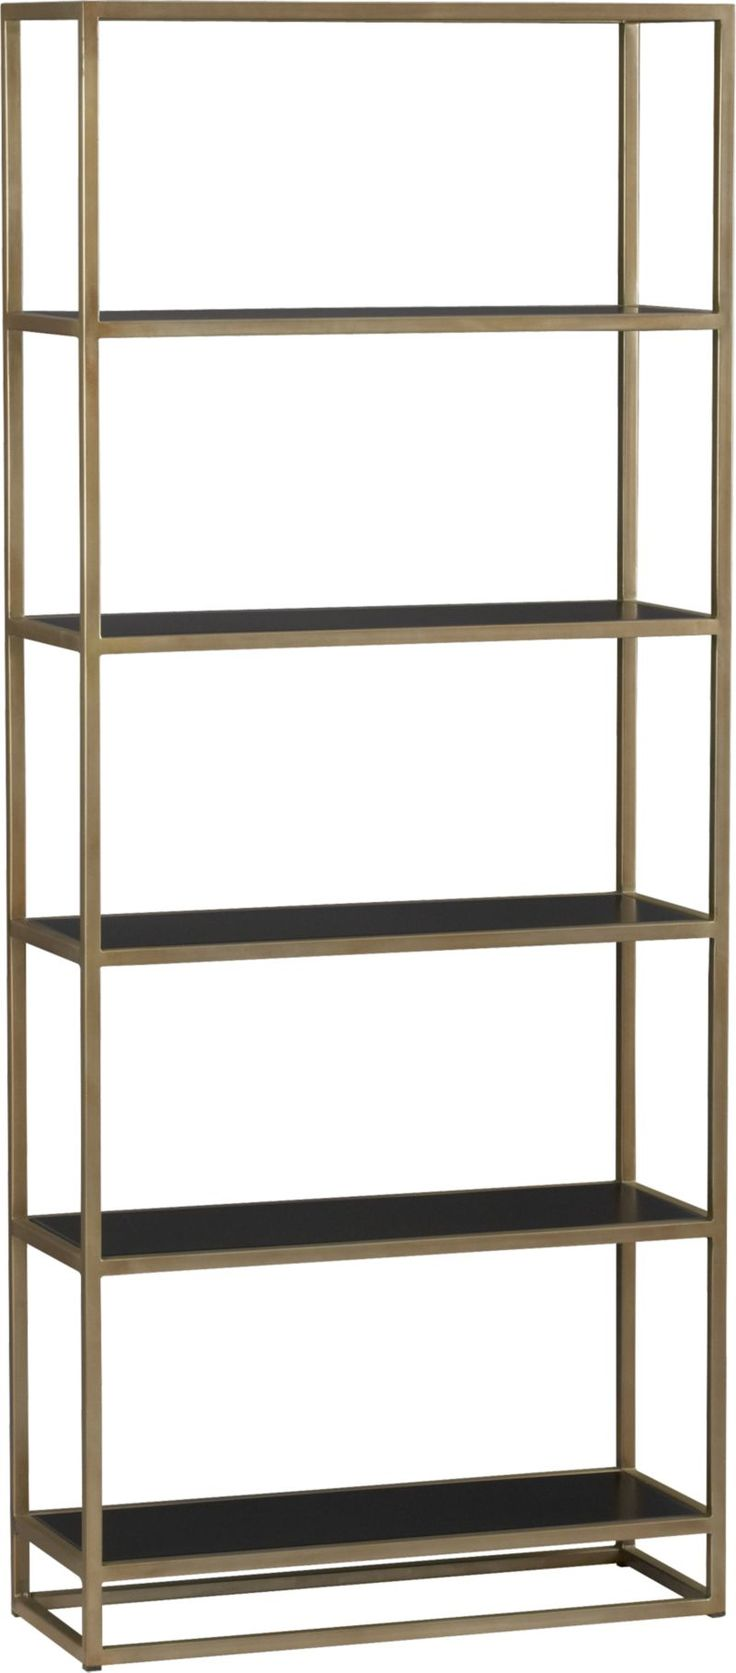 Elegant bookcase rises high in two tones of finished steel to store books and collectibles.  Slender frame is finished in a warm antiqued brass inset with handsome black powdercoat shelves. Mild steel shelves with black powdercoat finishMild steel tube frame with antiqued brass finishMade in India.